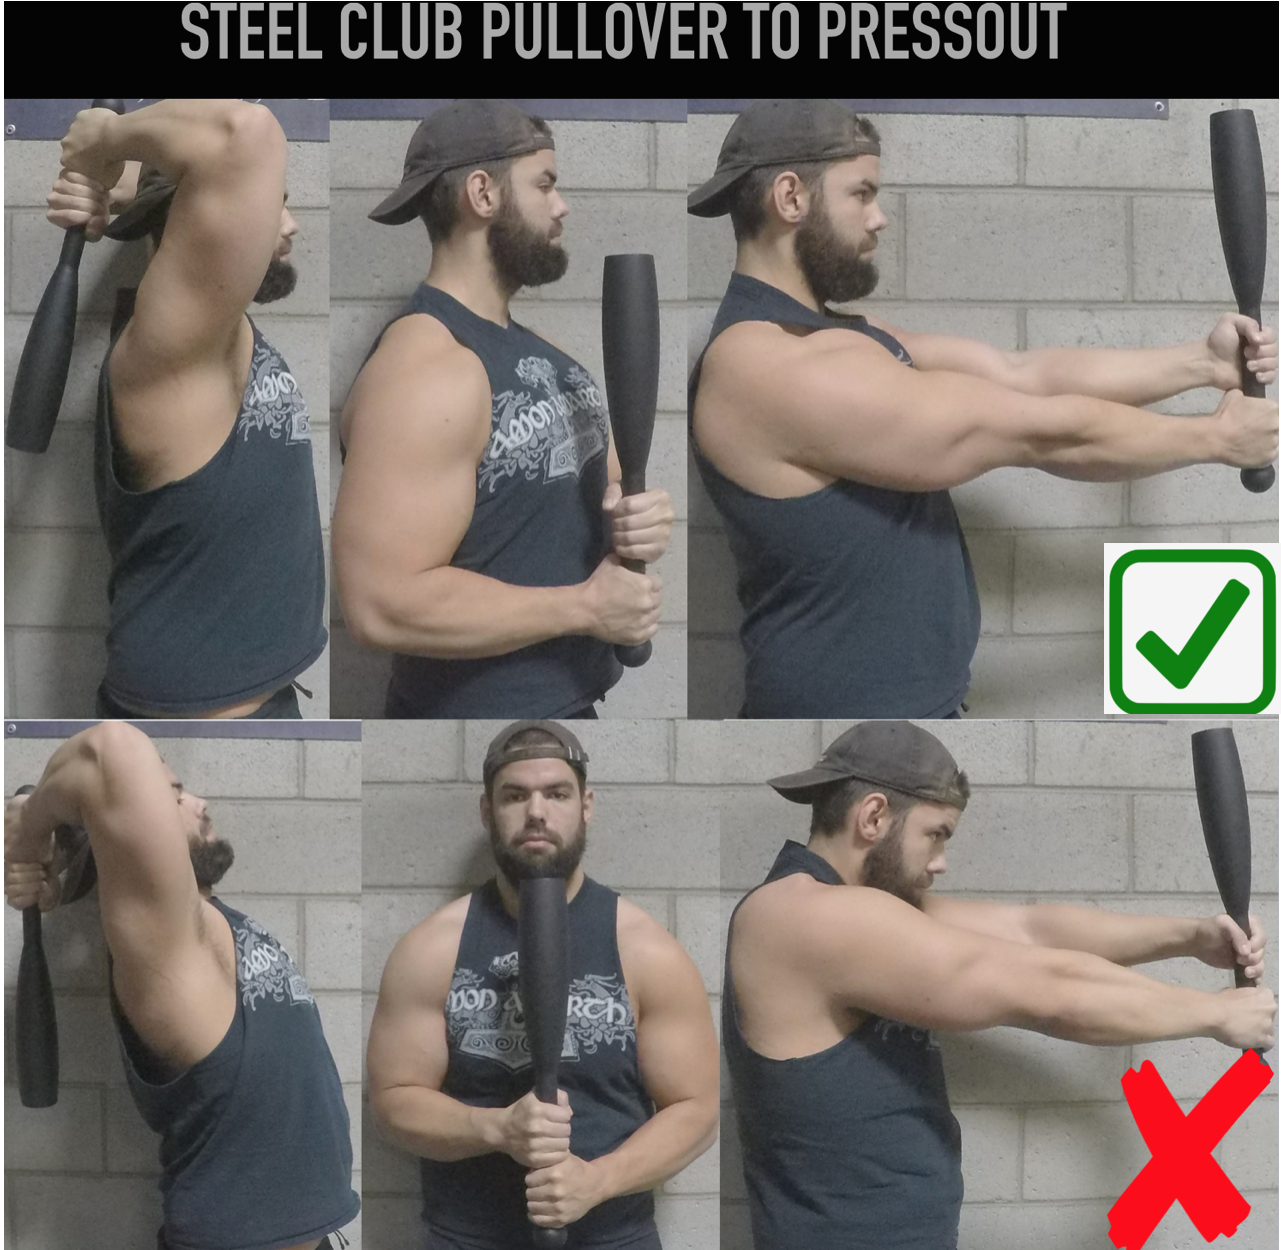 Steel Club Pullover to Pressout.png